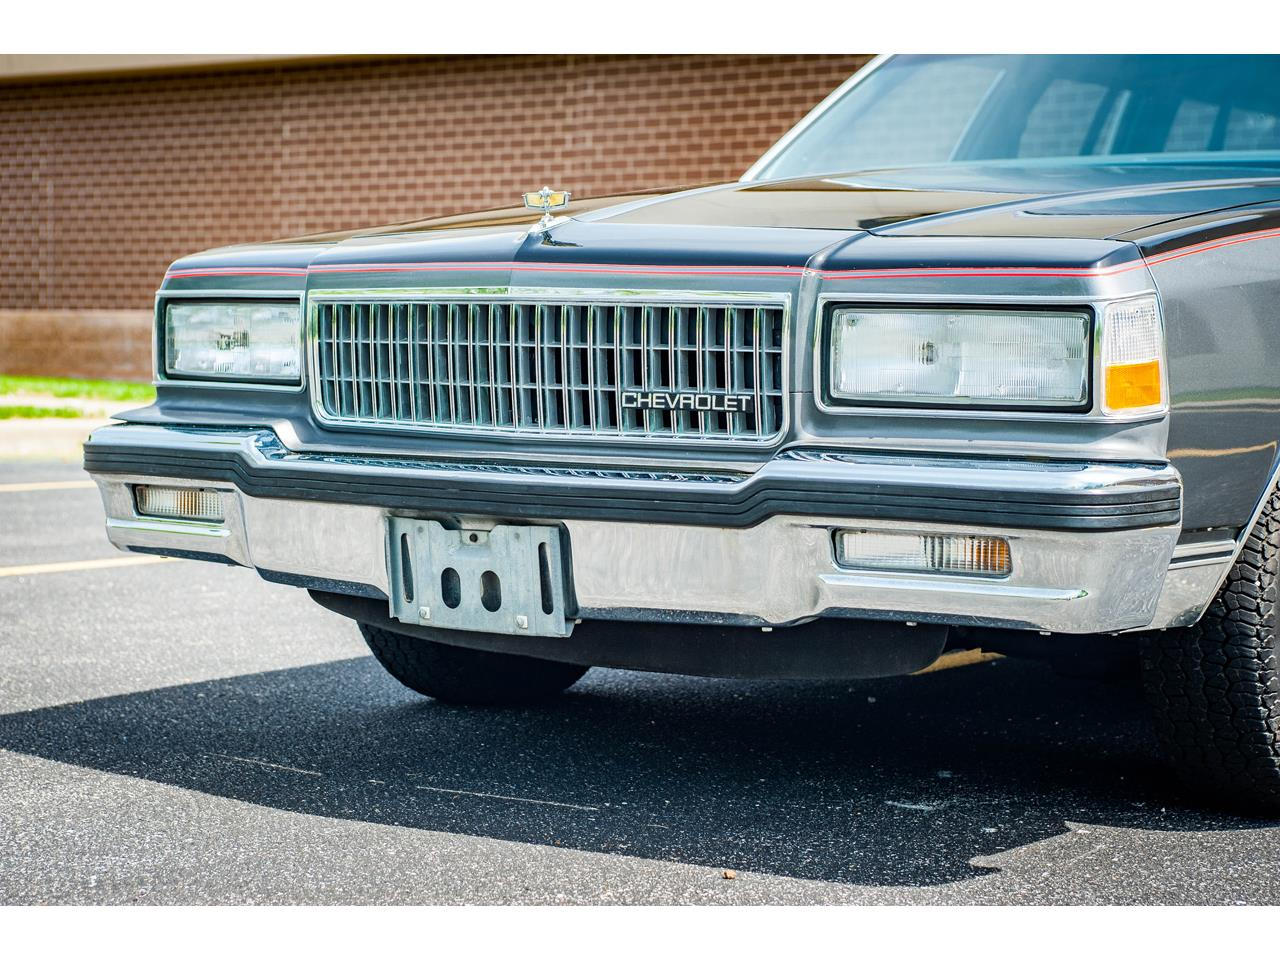 Large Picture of '89 Chevrolet Caprice located in O'Fallon Illinois - $17,995.00 - QB9K